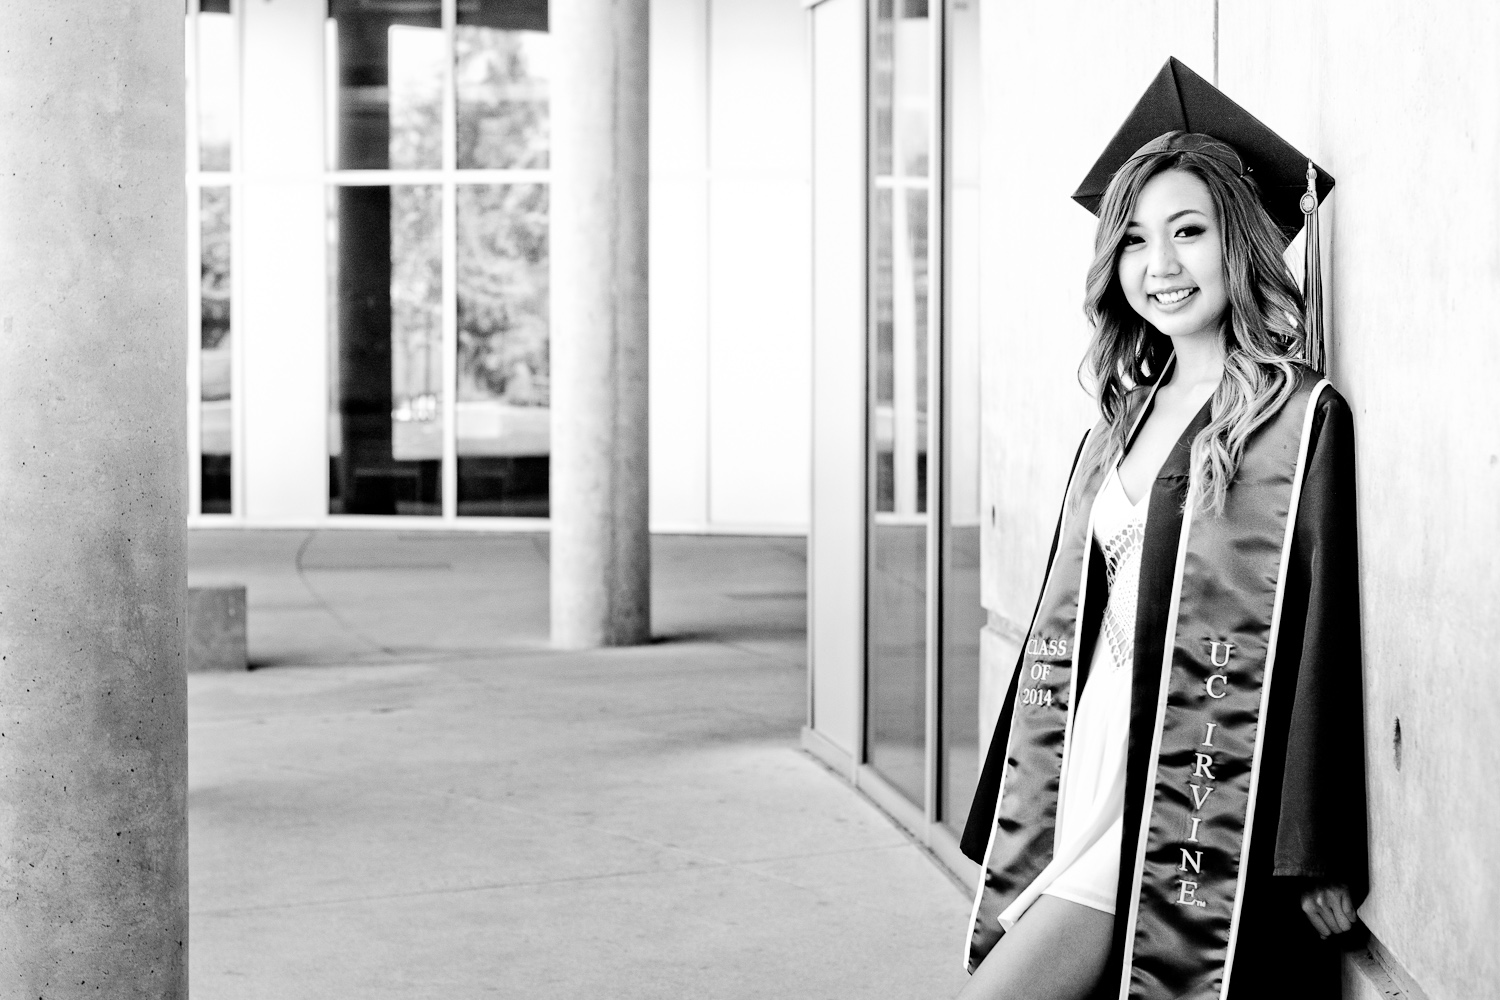 Bryan-Miraflor-Photography-Nancy-D-Grad-Photoshoot-UCI-20140607-0019.jpg